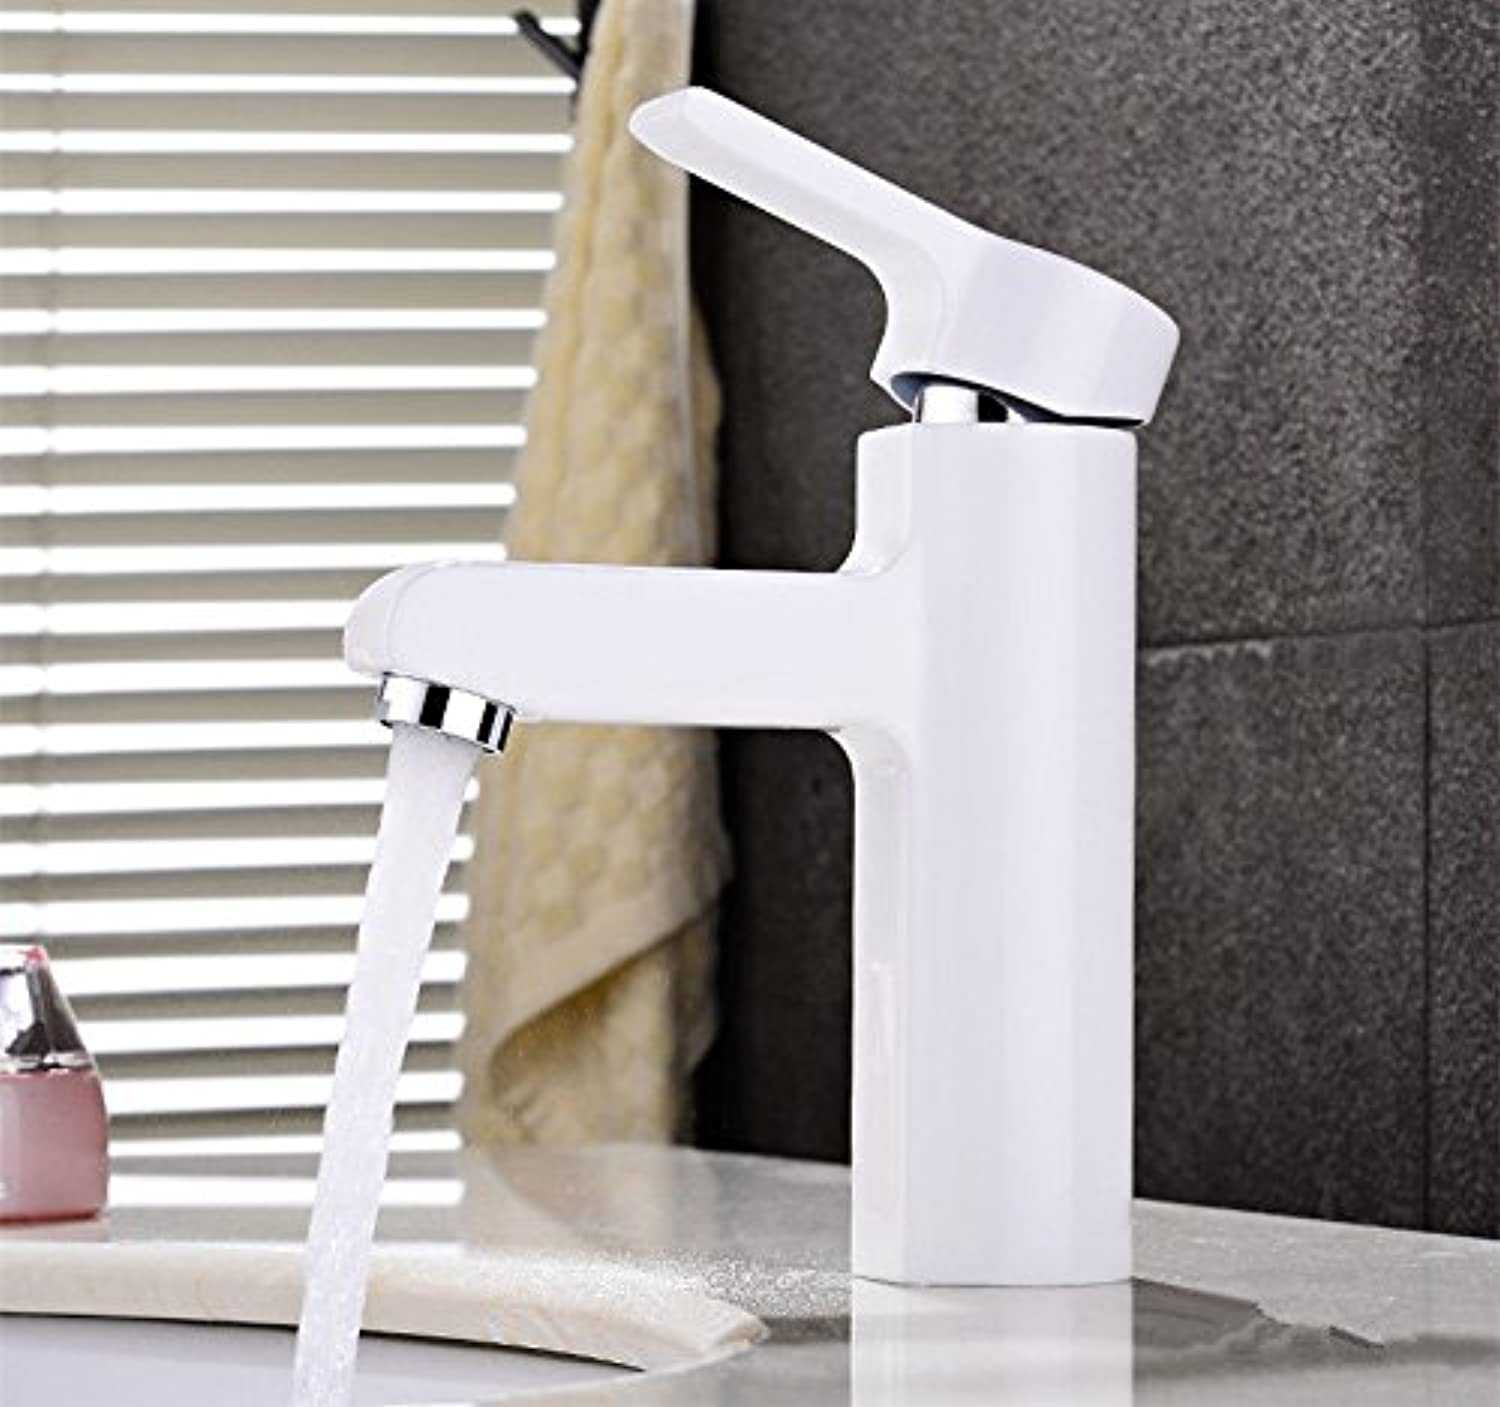 Hlluya Professional Sink Mixer Tap Kitchen Faucet The copper cold water faucet washbasin white